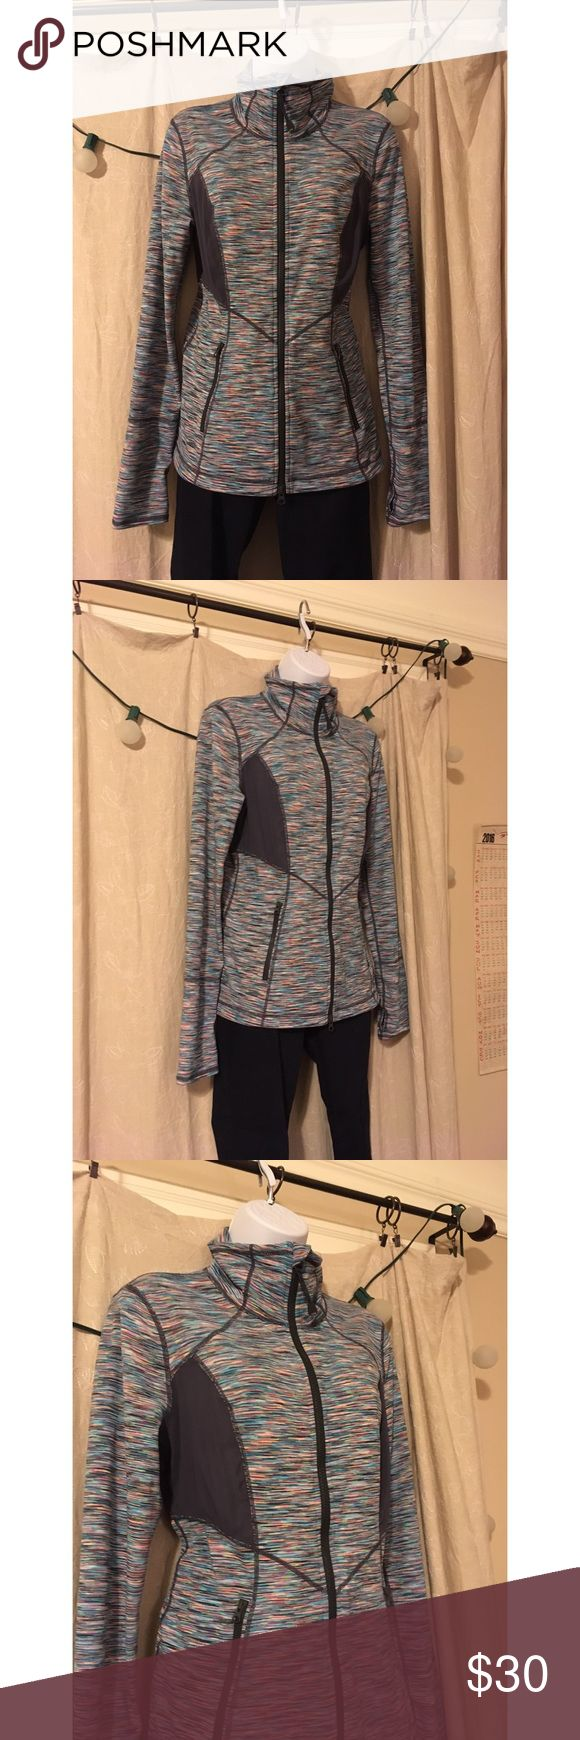 Zella Zip up Jacket Multi color zip up jacket, activewear, has breathable mesh under arms, zippered pockets on either side, thumb holes, zips up all the way for neck coverage/NEVER BEEN WORN Zella Jackets & Coats